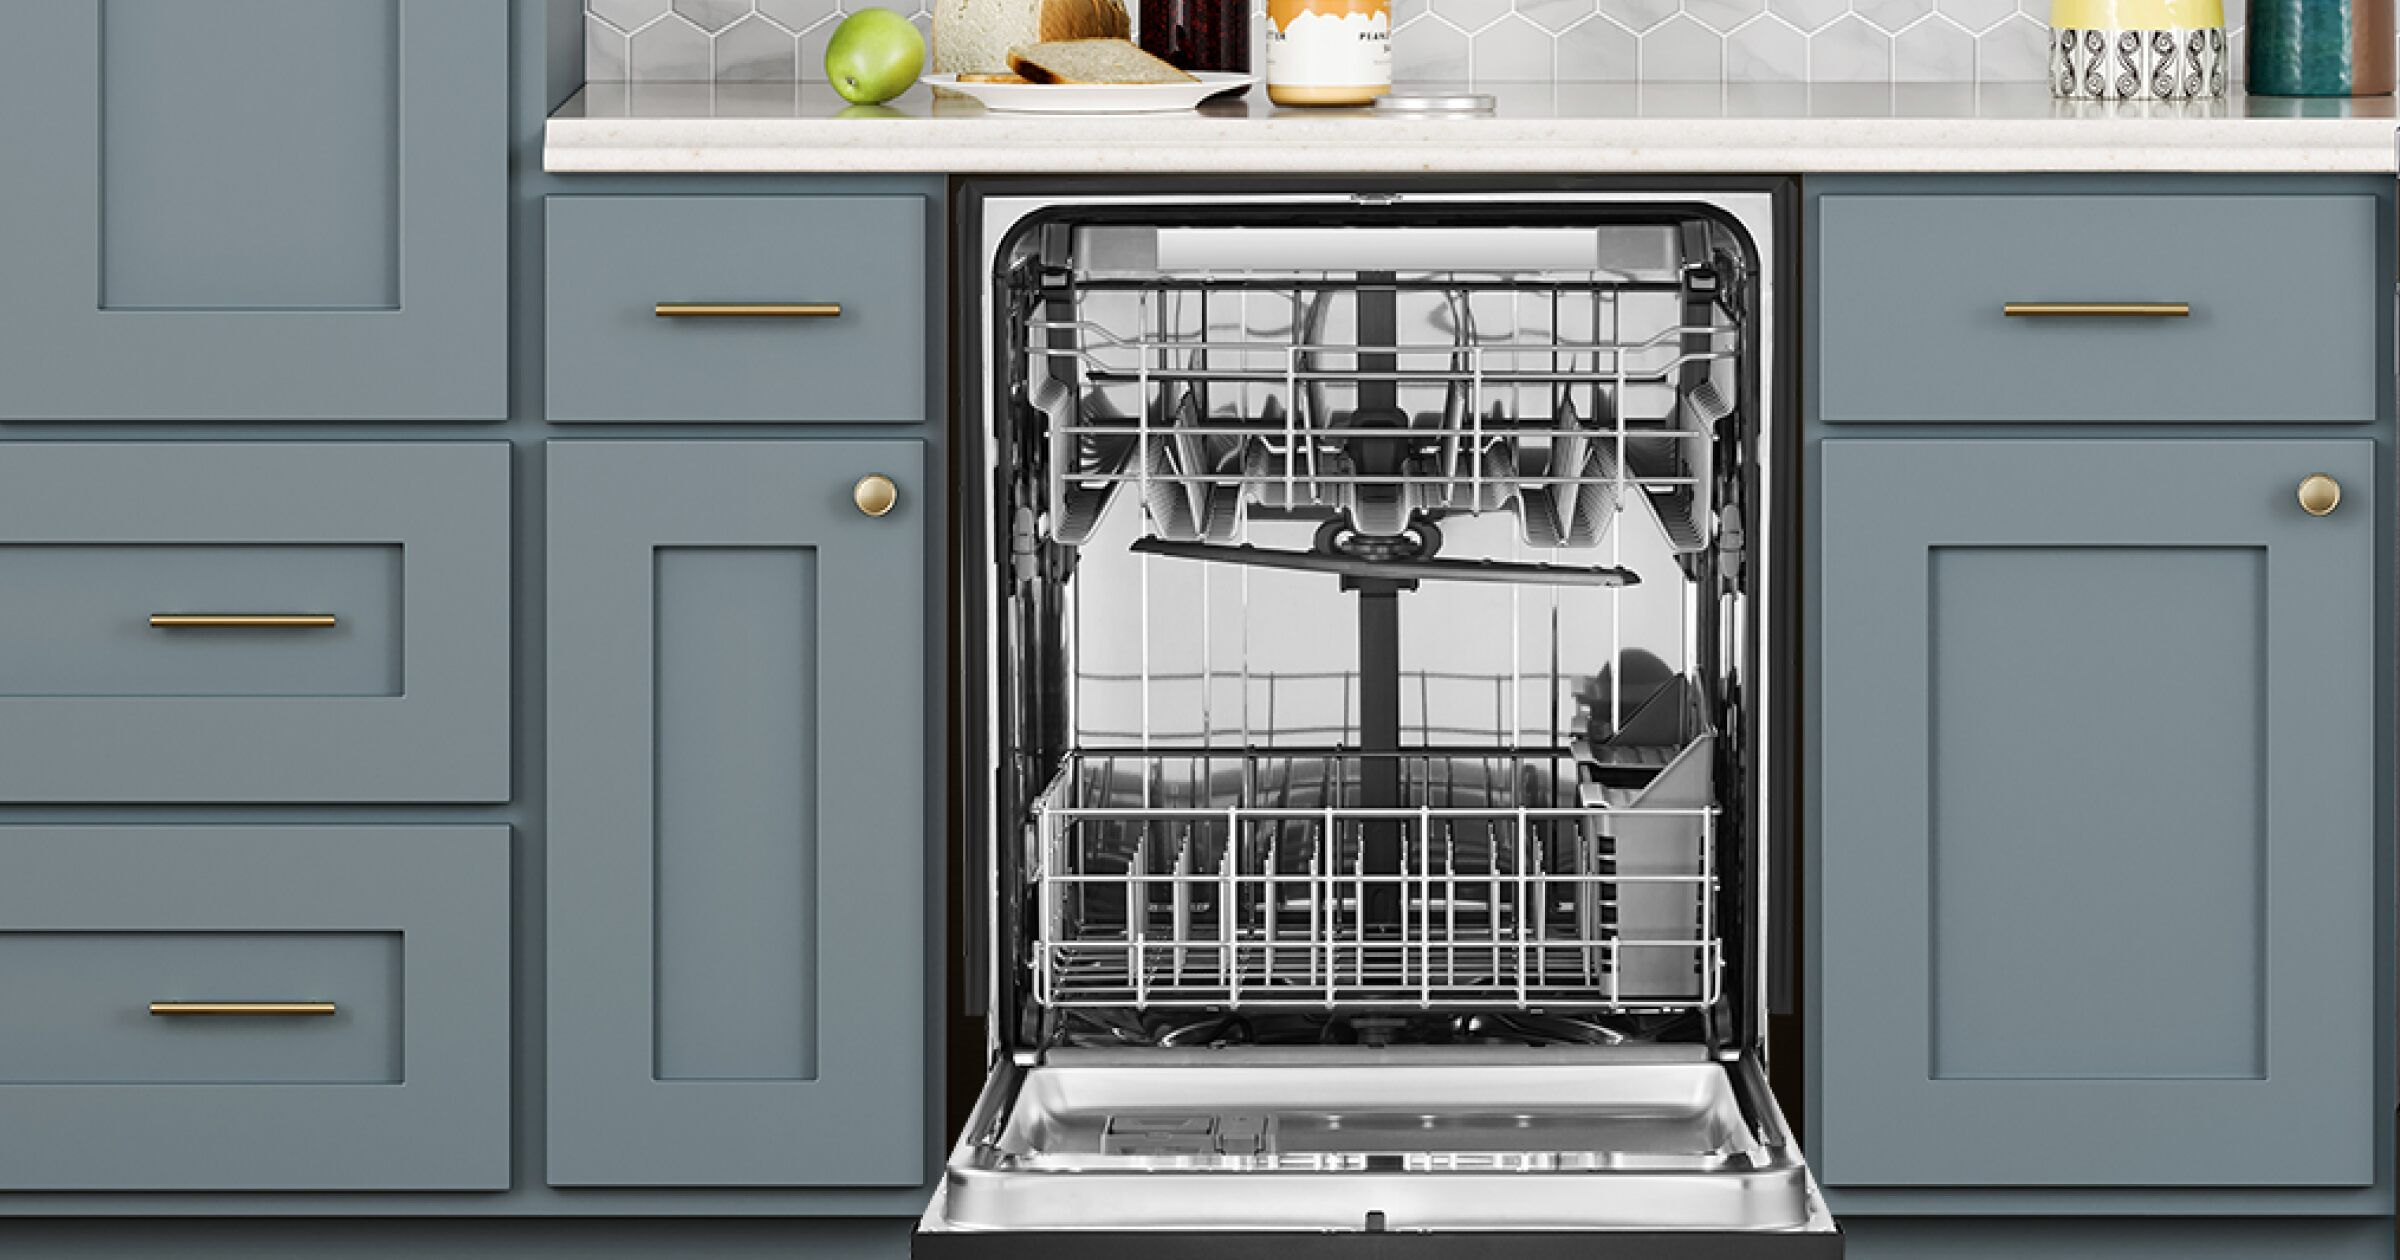 How To Clean A Dishwasher In 3 Easy Steps Whirlpool Clean Dishwasher Clean Microwave Dishwasher Cleaner